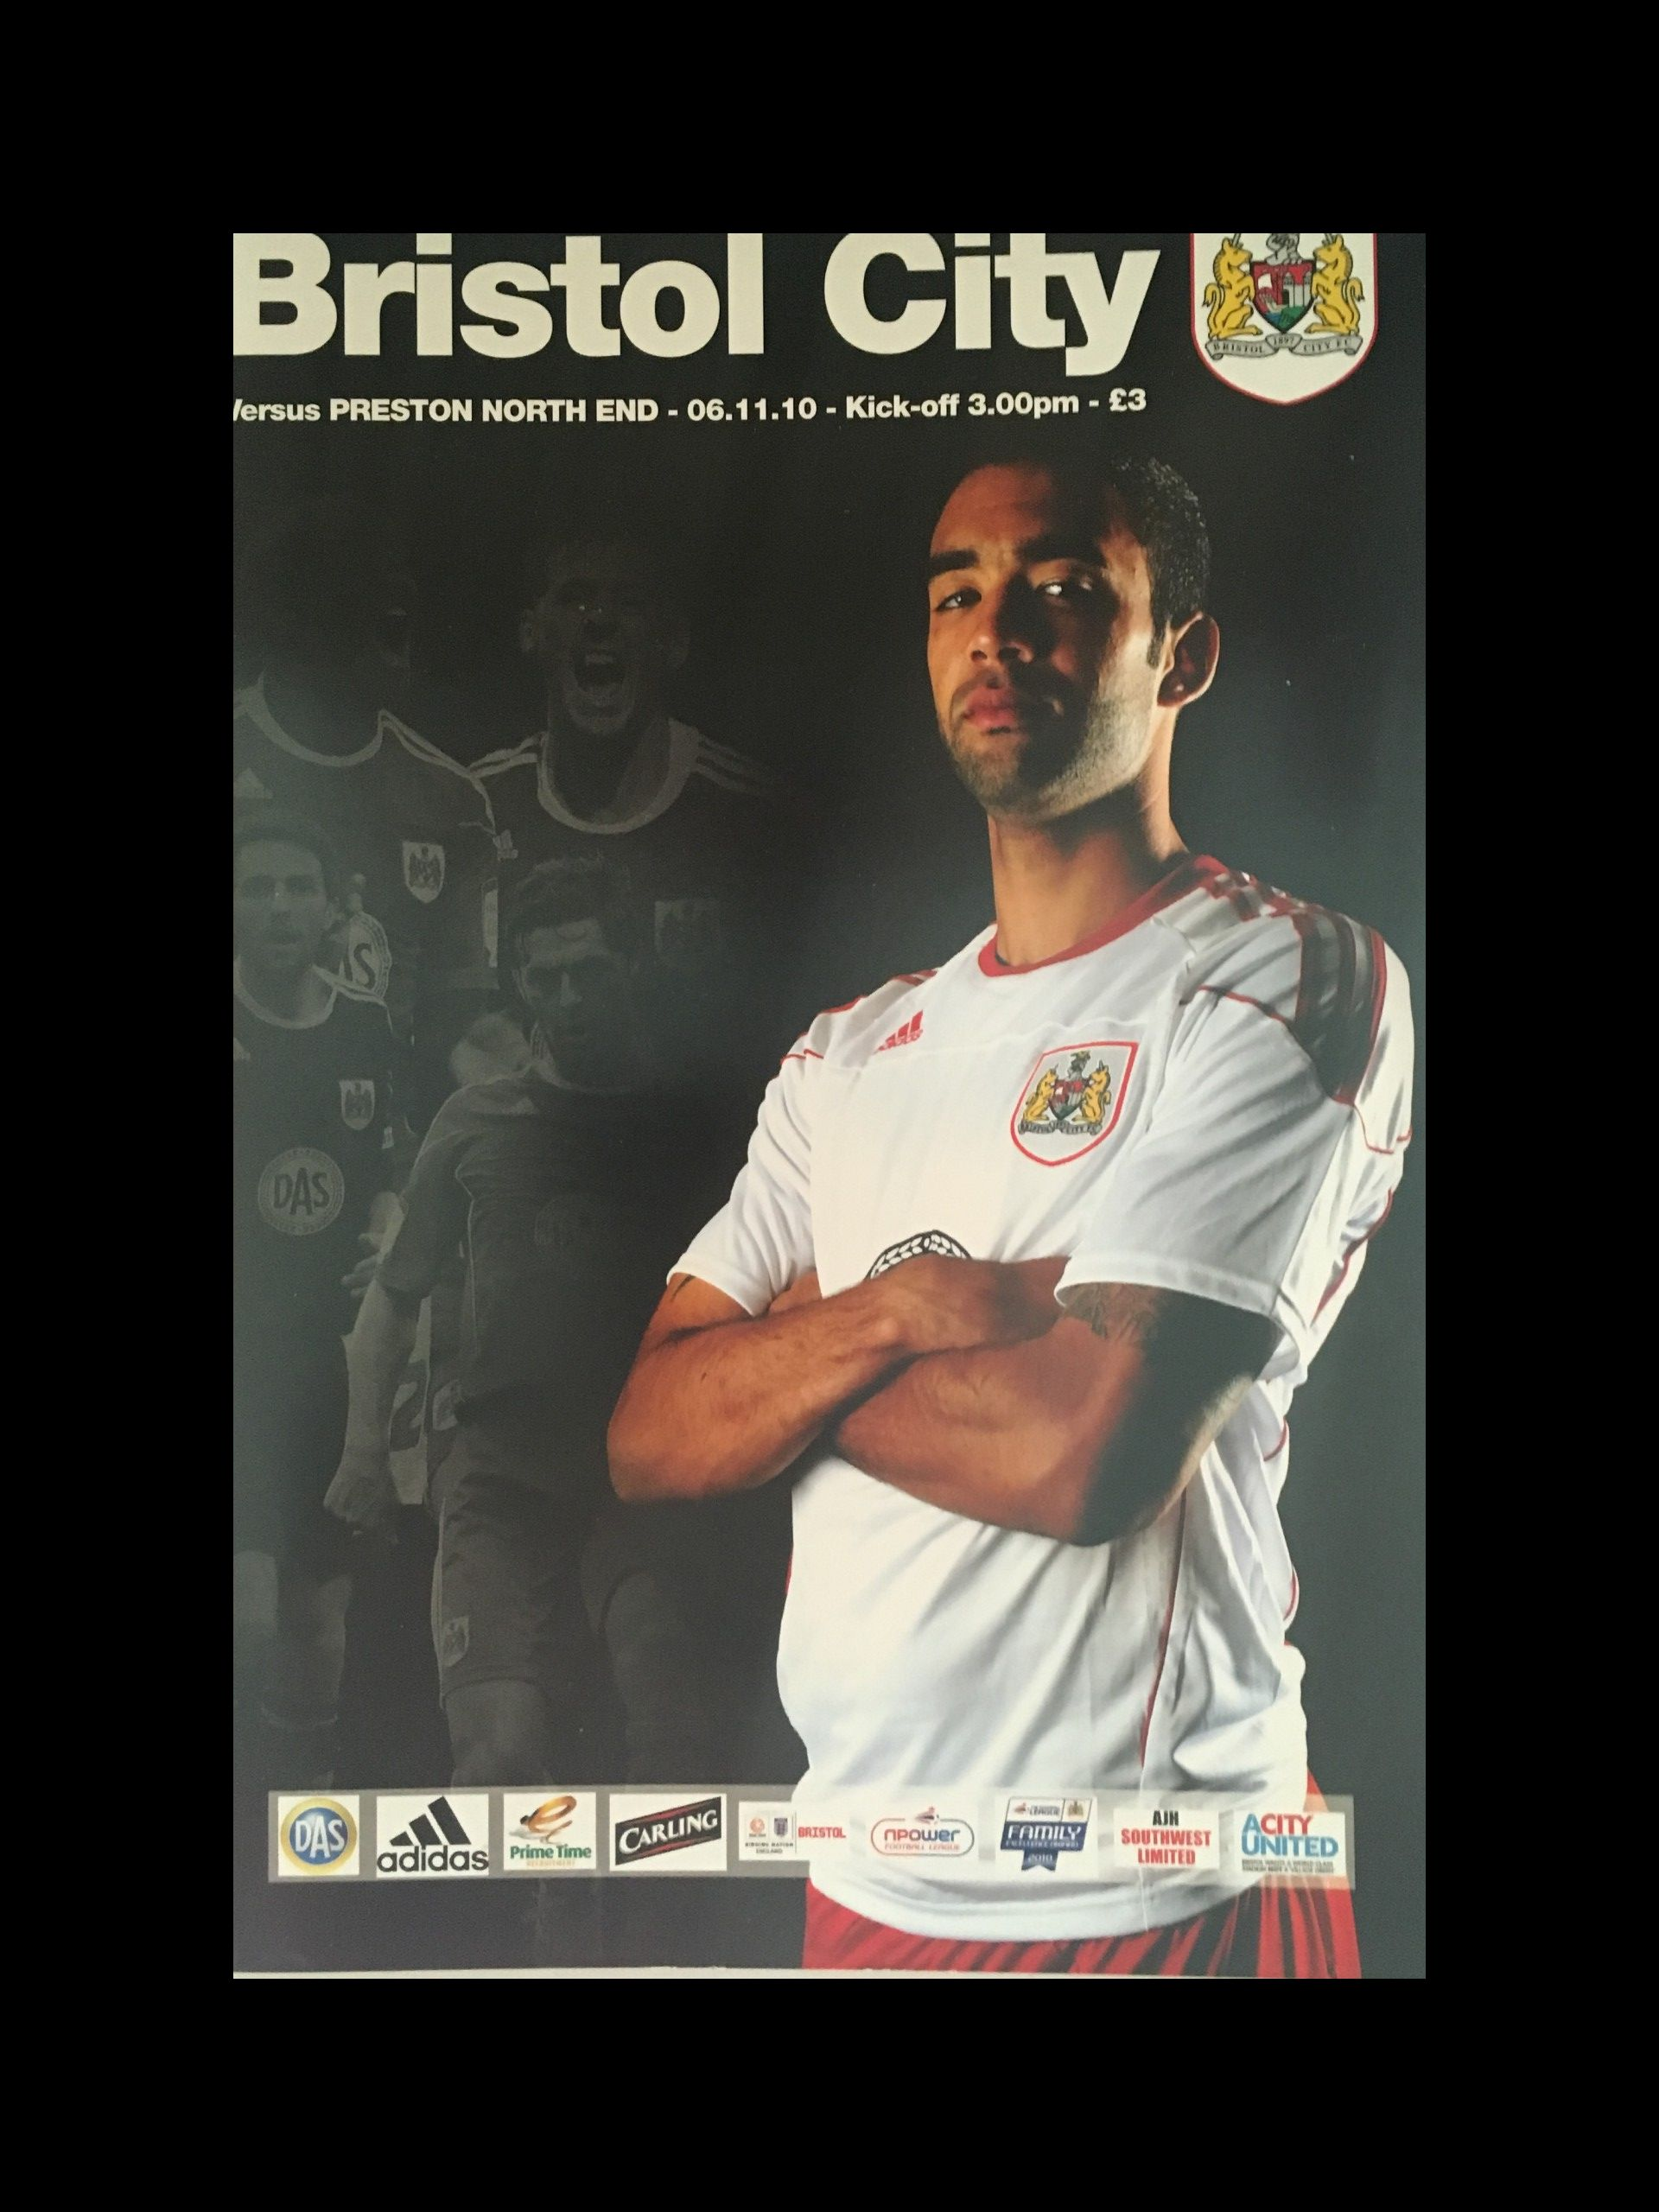 Bristol City v Preston North End 06-11-2010 Programme